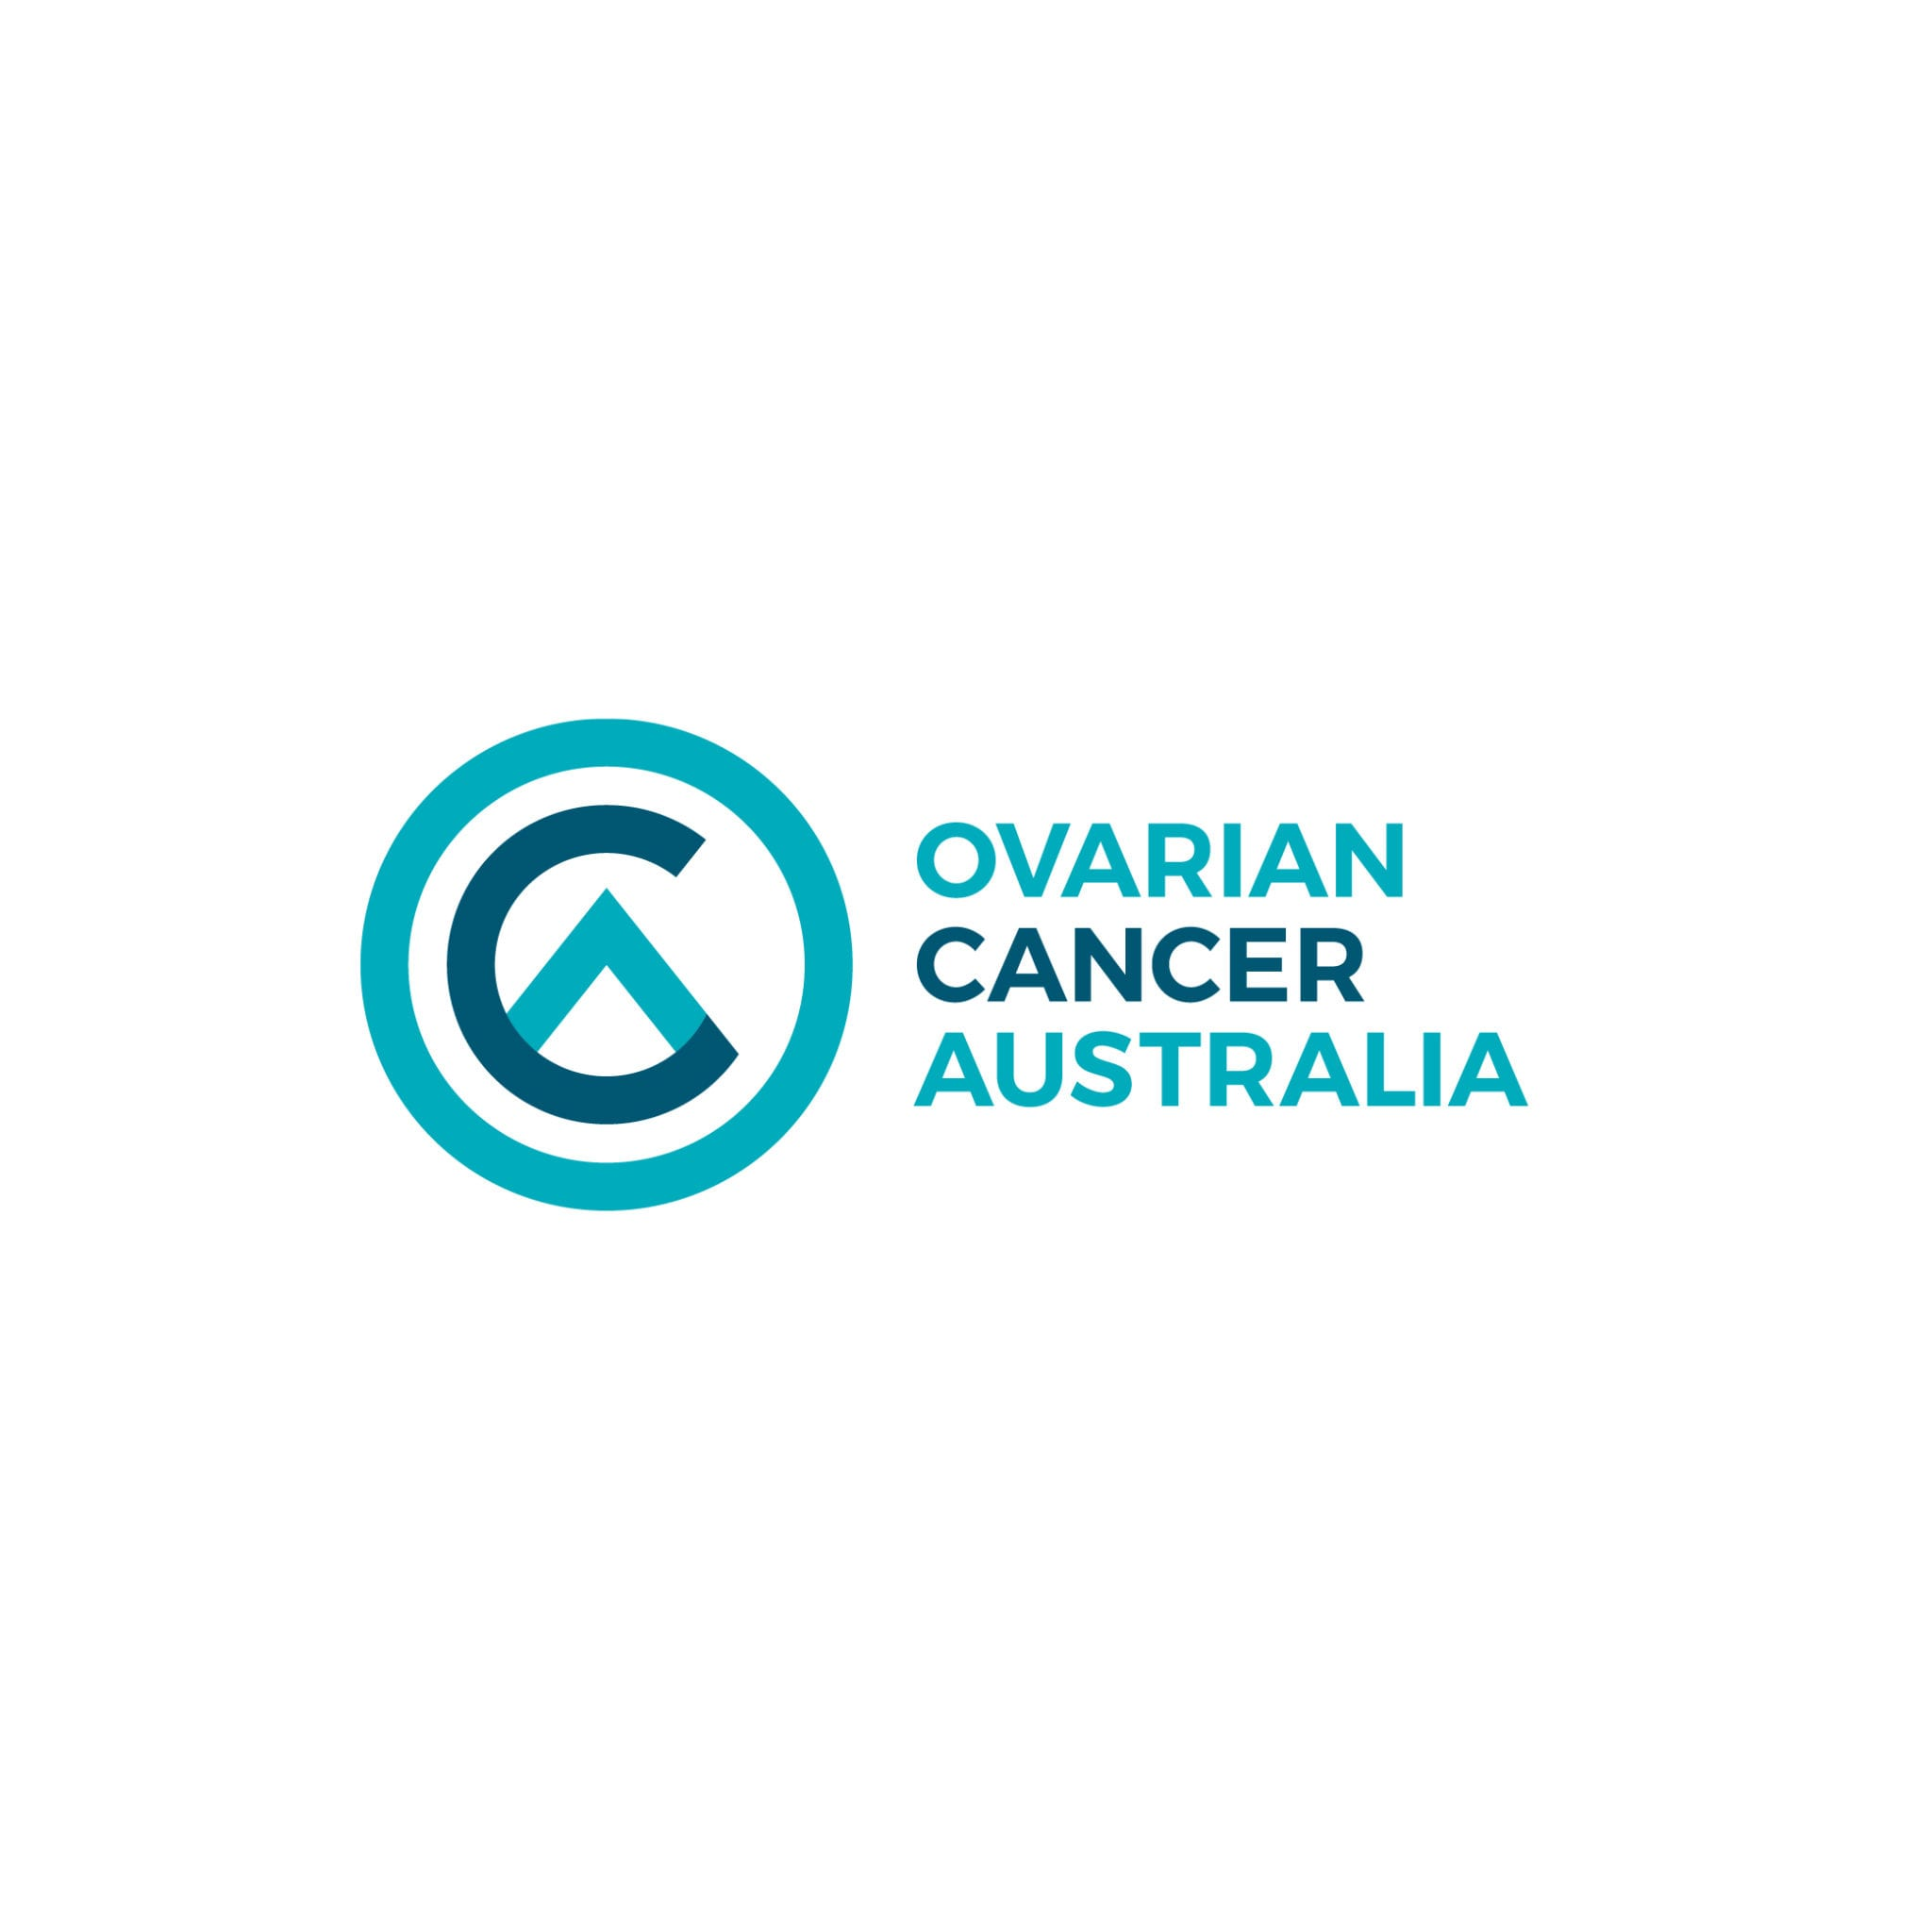 Ovarian-Cancer-Australia-Inspired-Adventures